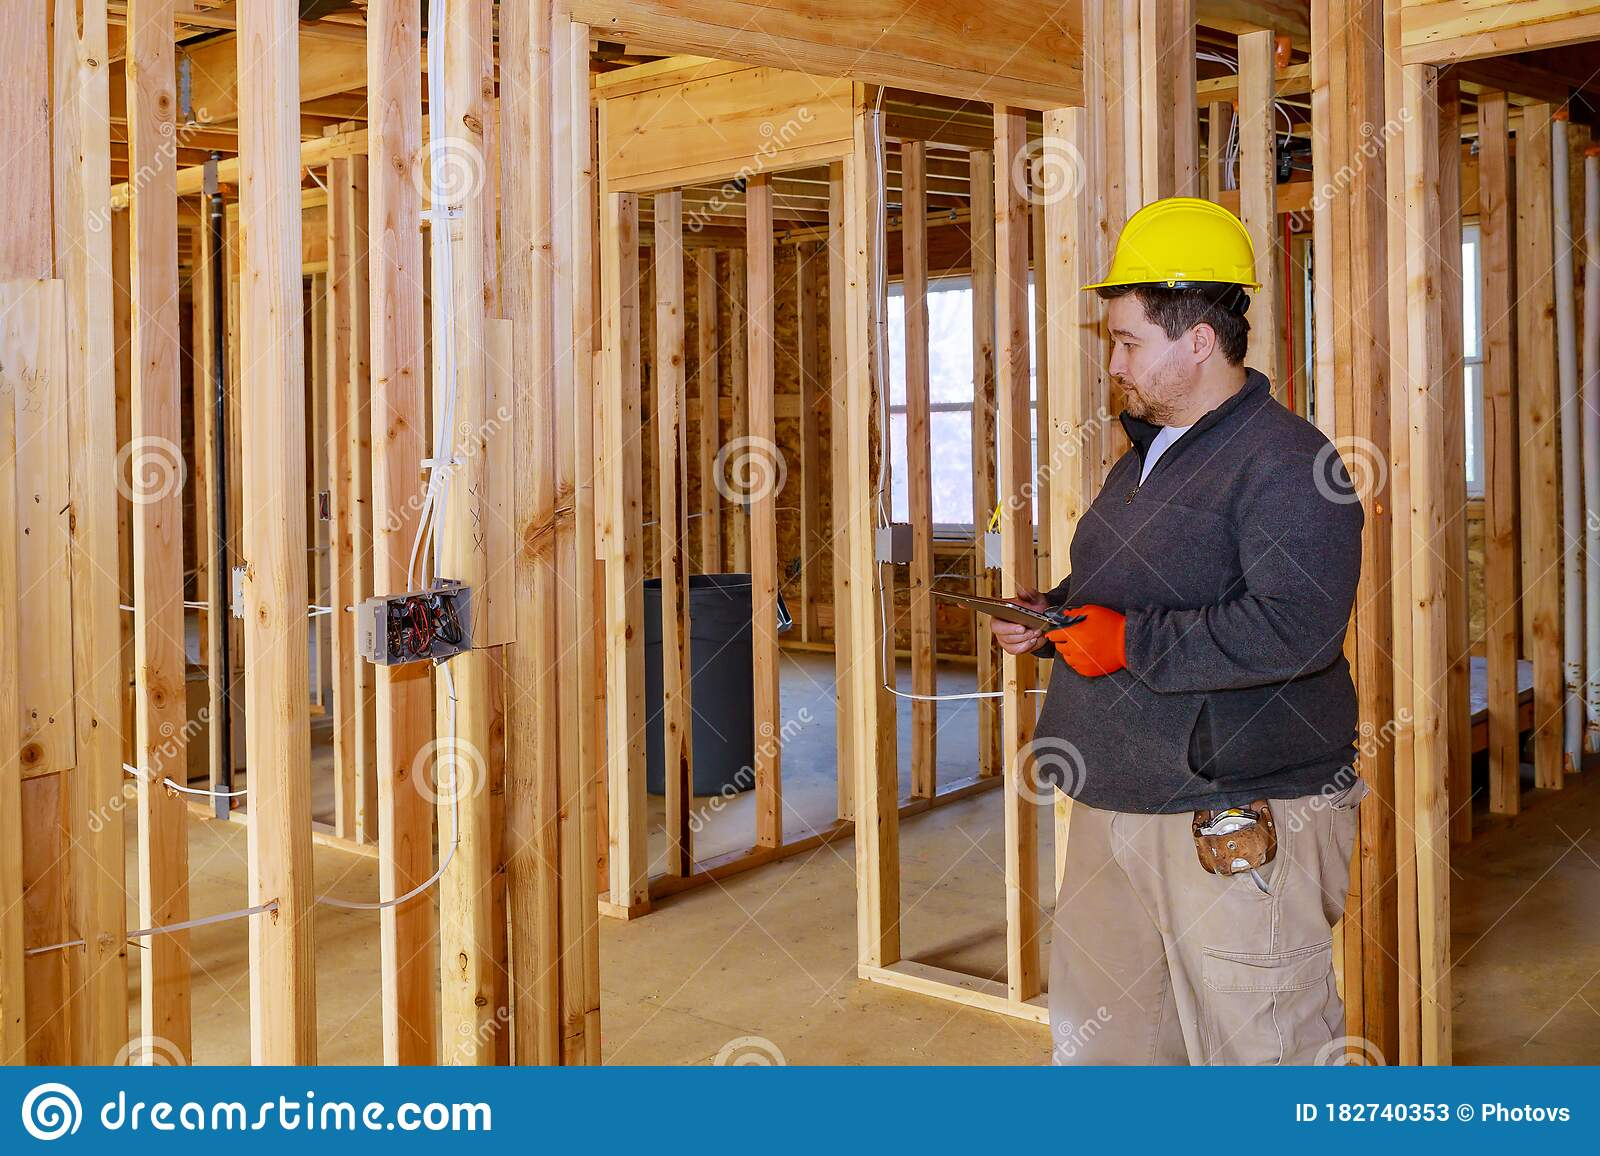 Inspector With Yellow Hard Hat Checking Electrical Wiring Inside House Stock Image Image Of Electric Electrician 182740353